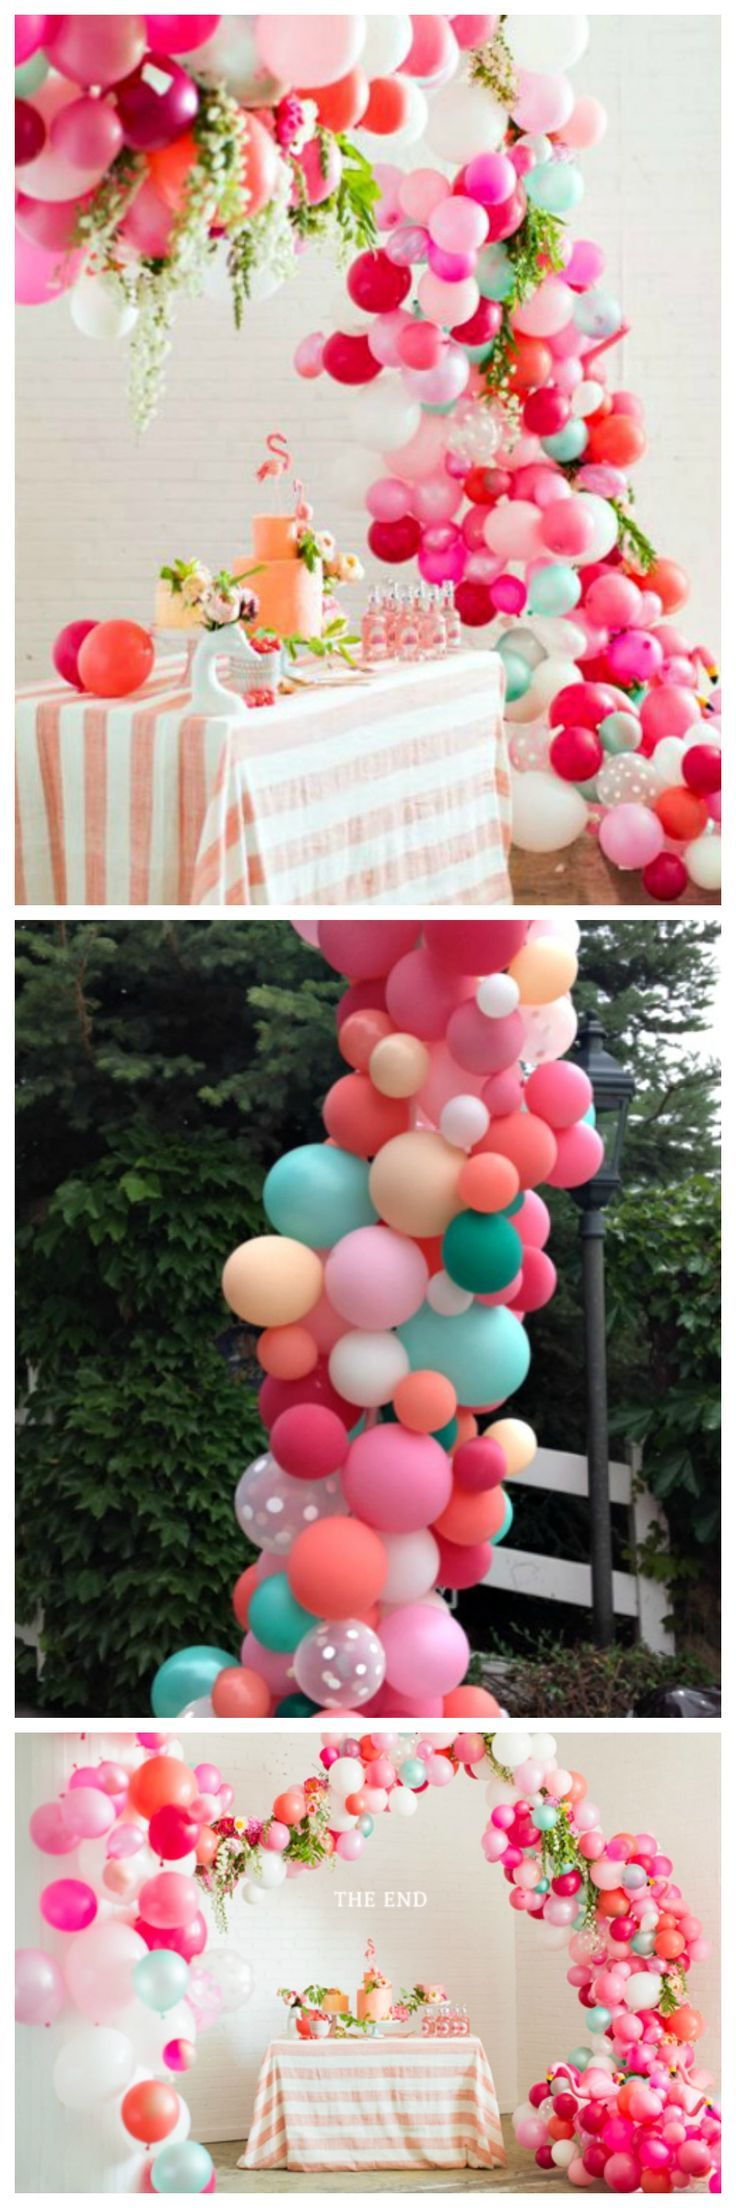 Balloon arch for wedding - Balloon Arch Tutorial So Gorgeous And Festive For Any Party